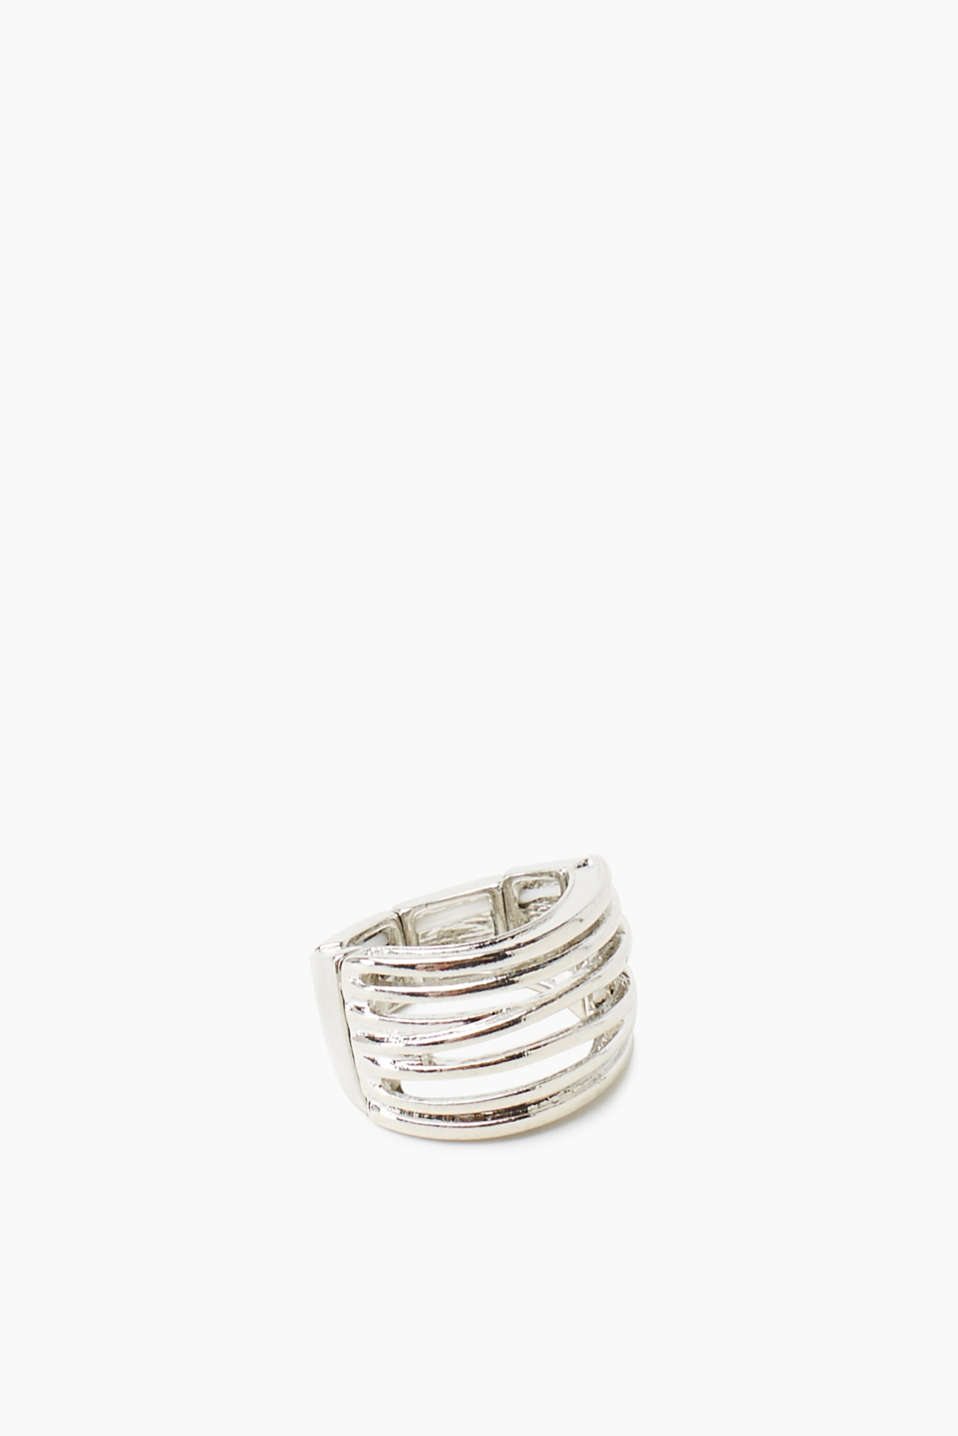 One size wide stretch ring in a minimal design